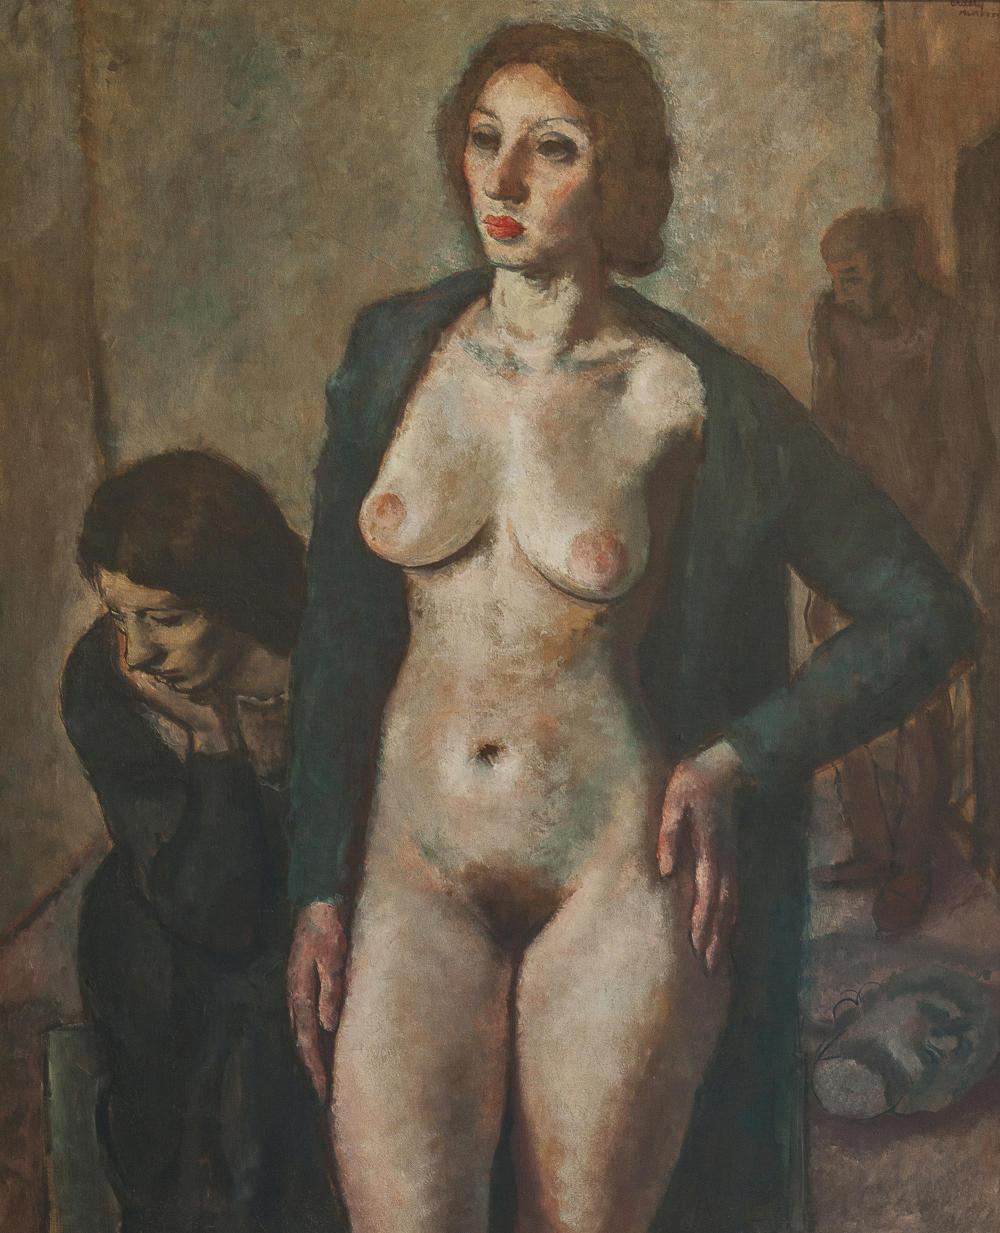 """Francis De Erdely, (1904-1959 Los Angeles, CA), Figural of standing nude, 1934, Oil on canvas laid to canvas, 54.25"""" H x 42.5"""" W"""